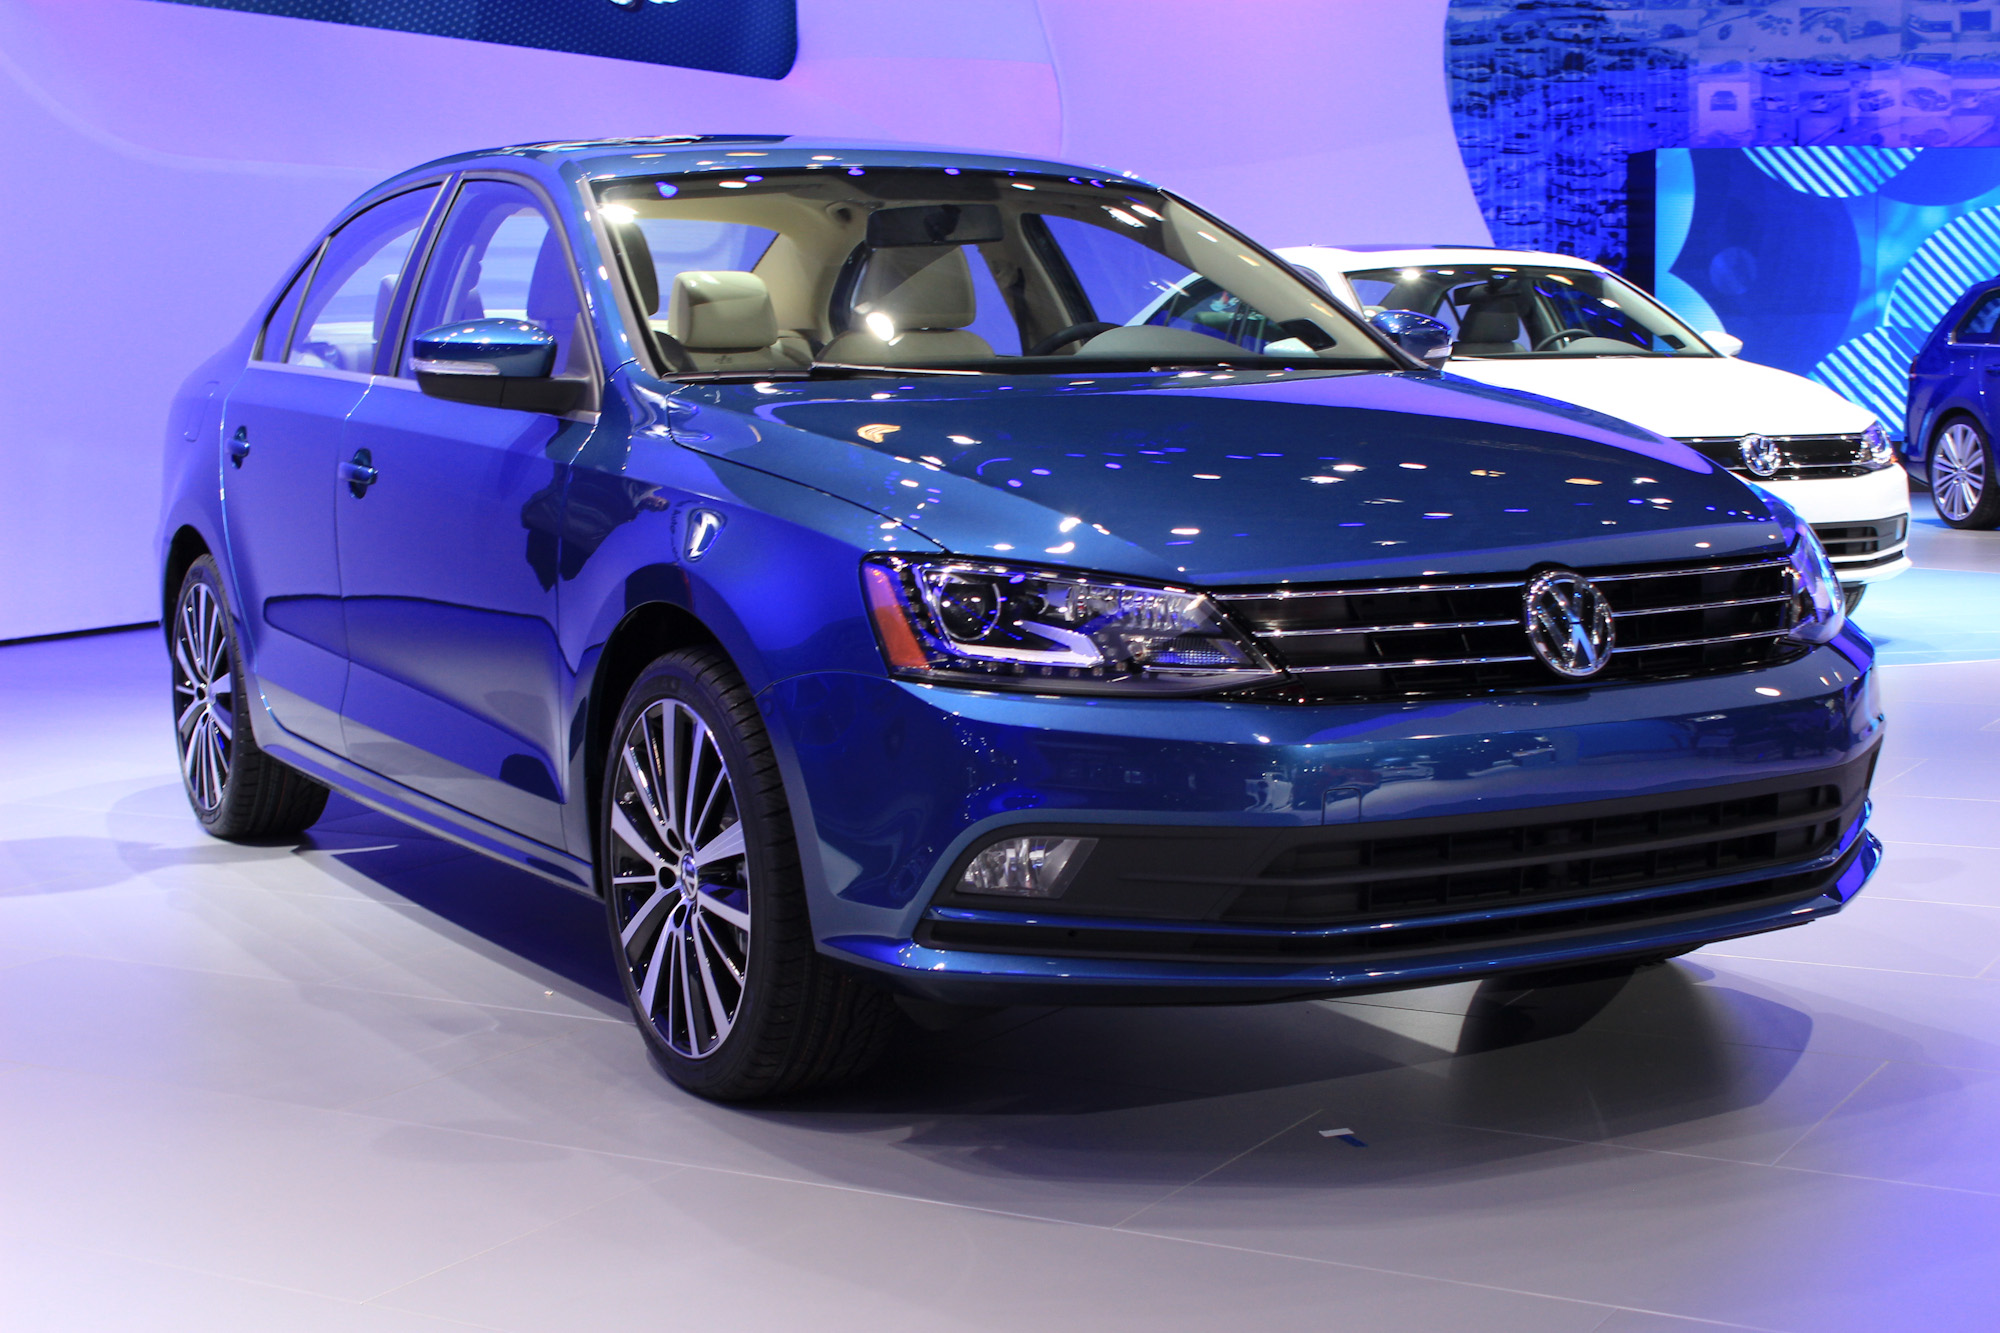 brand new 2015 volkswagen tdi diesels back on sale after modifications. Black Bedroom Furniture Sets. Home Design Ideas